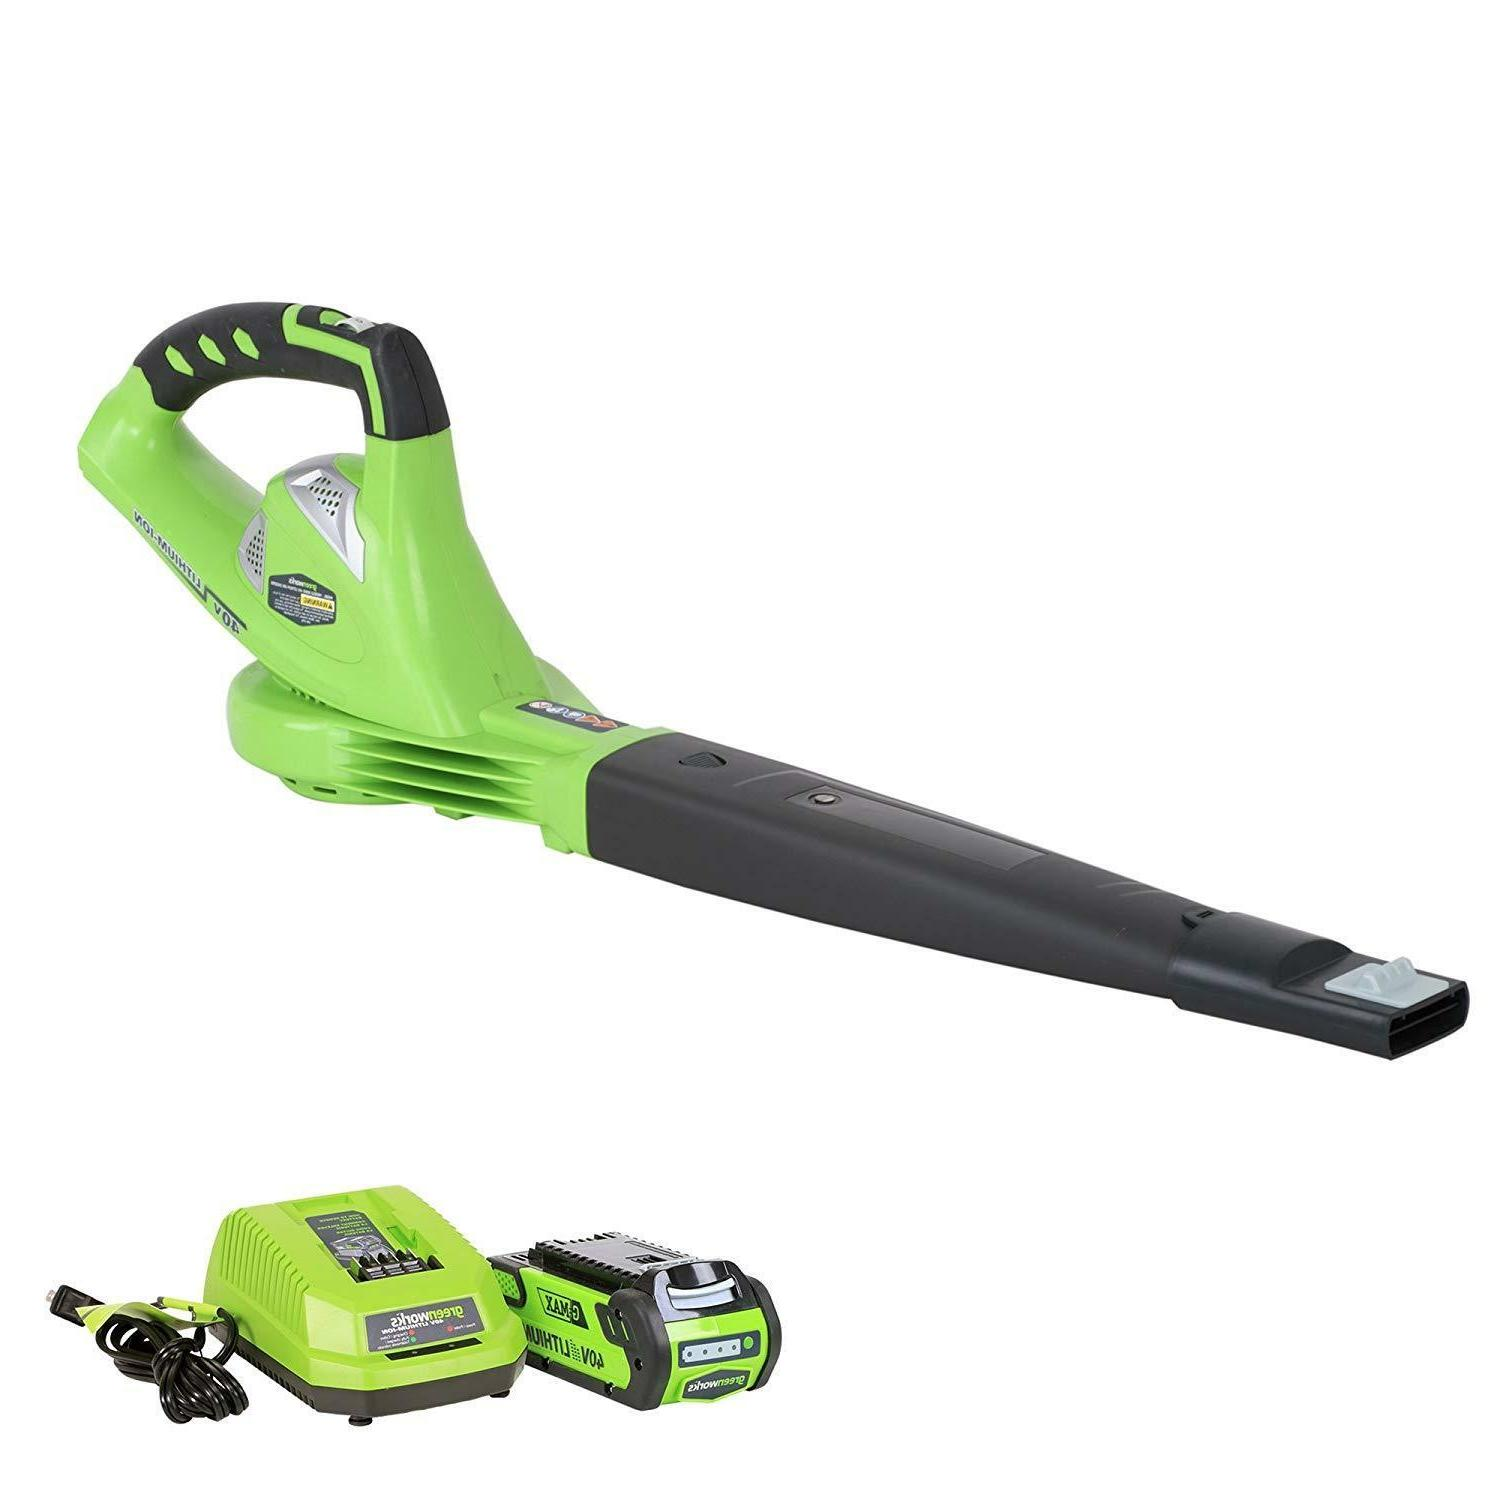 GREENWORKS 40V VARIABLE CORDLESS BLOWER, 2.0 INCLUDED